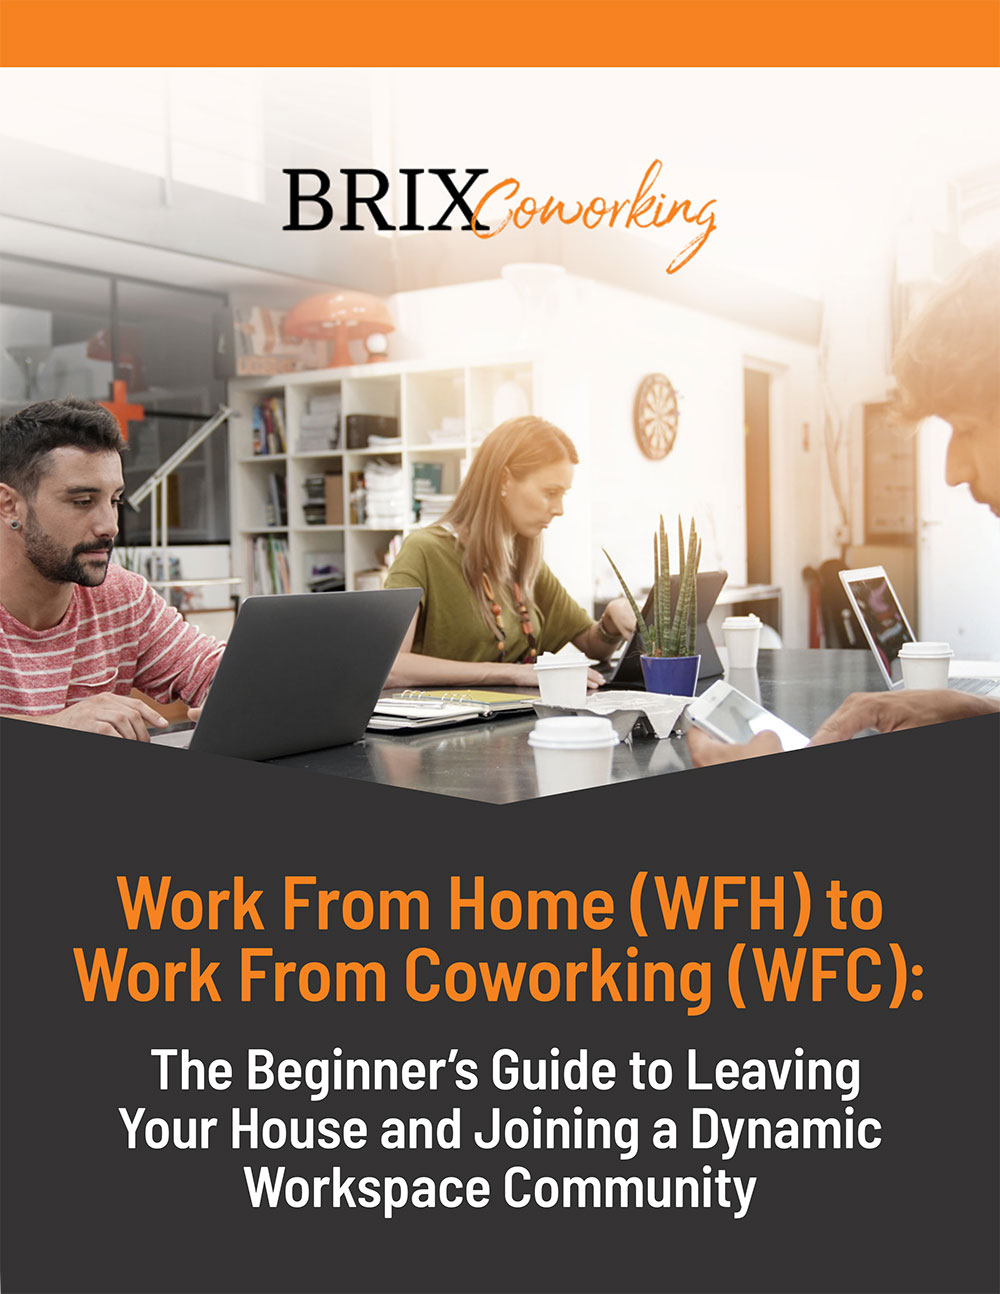 WFH to WFC: The Beginner's Guide to Leaving Your House and Joining a Dynamic Workspace Community